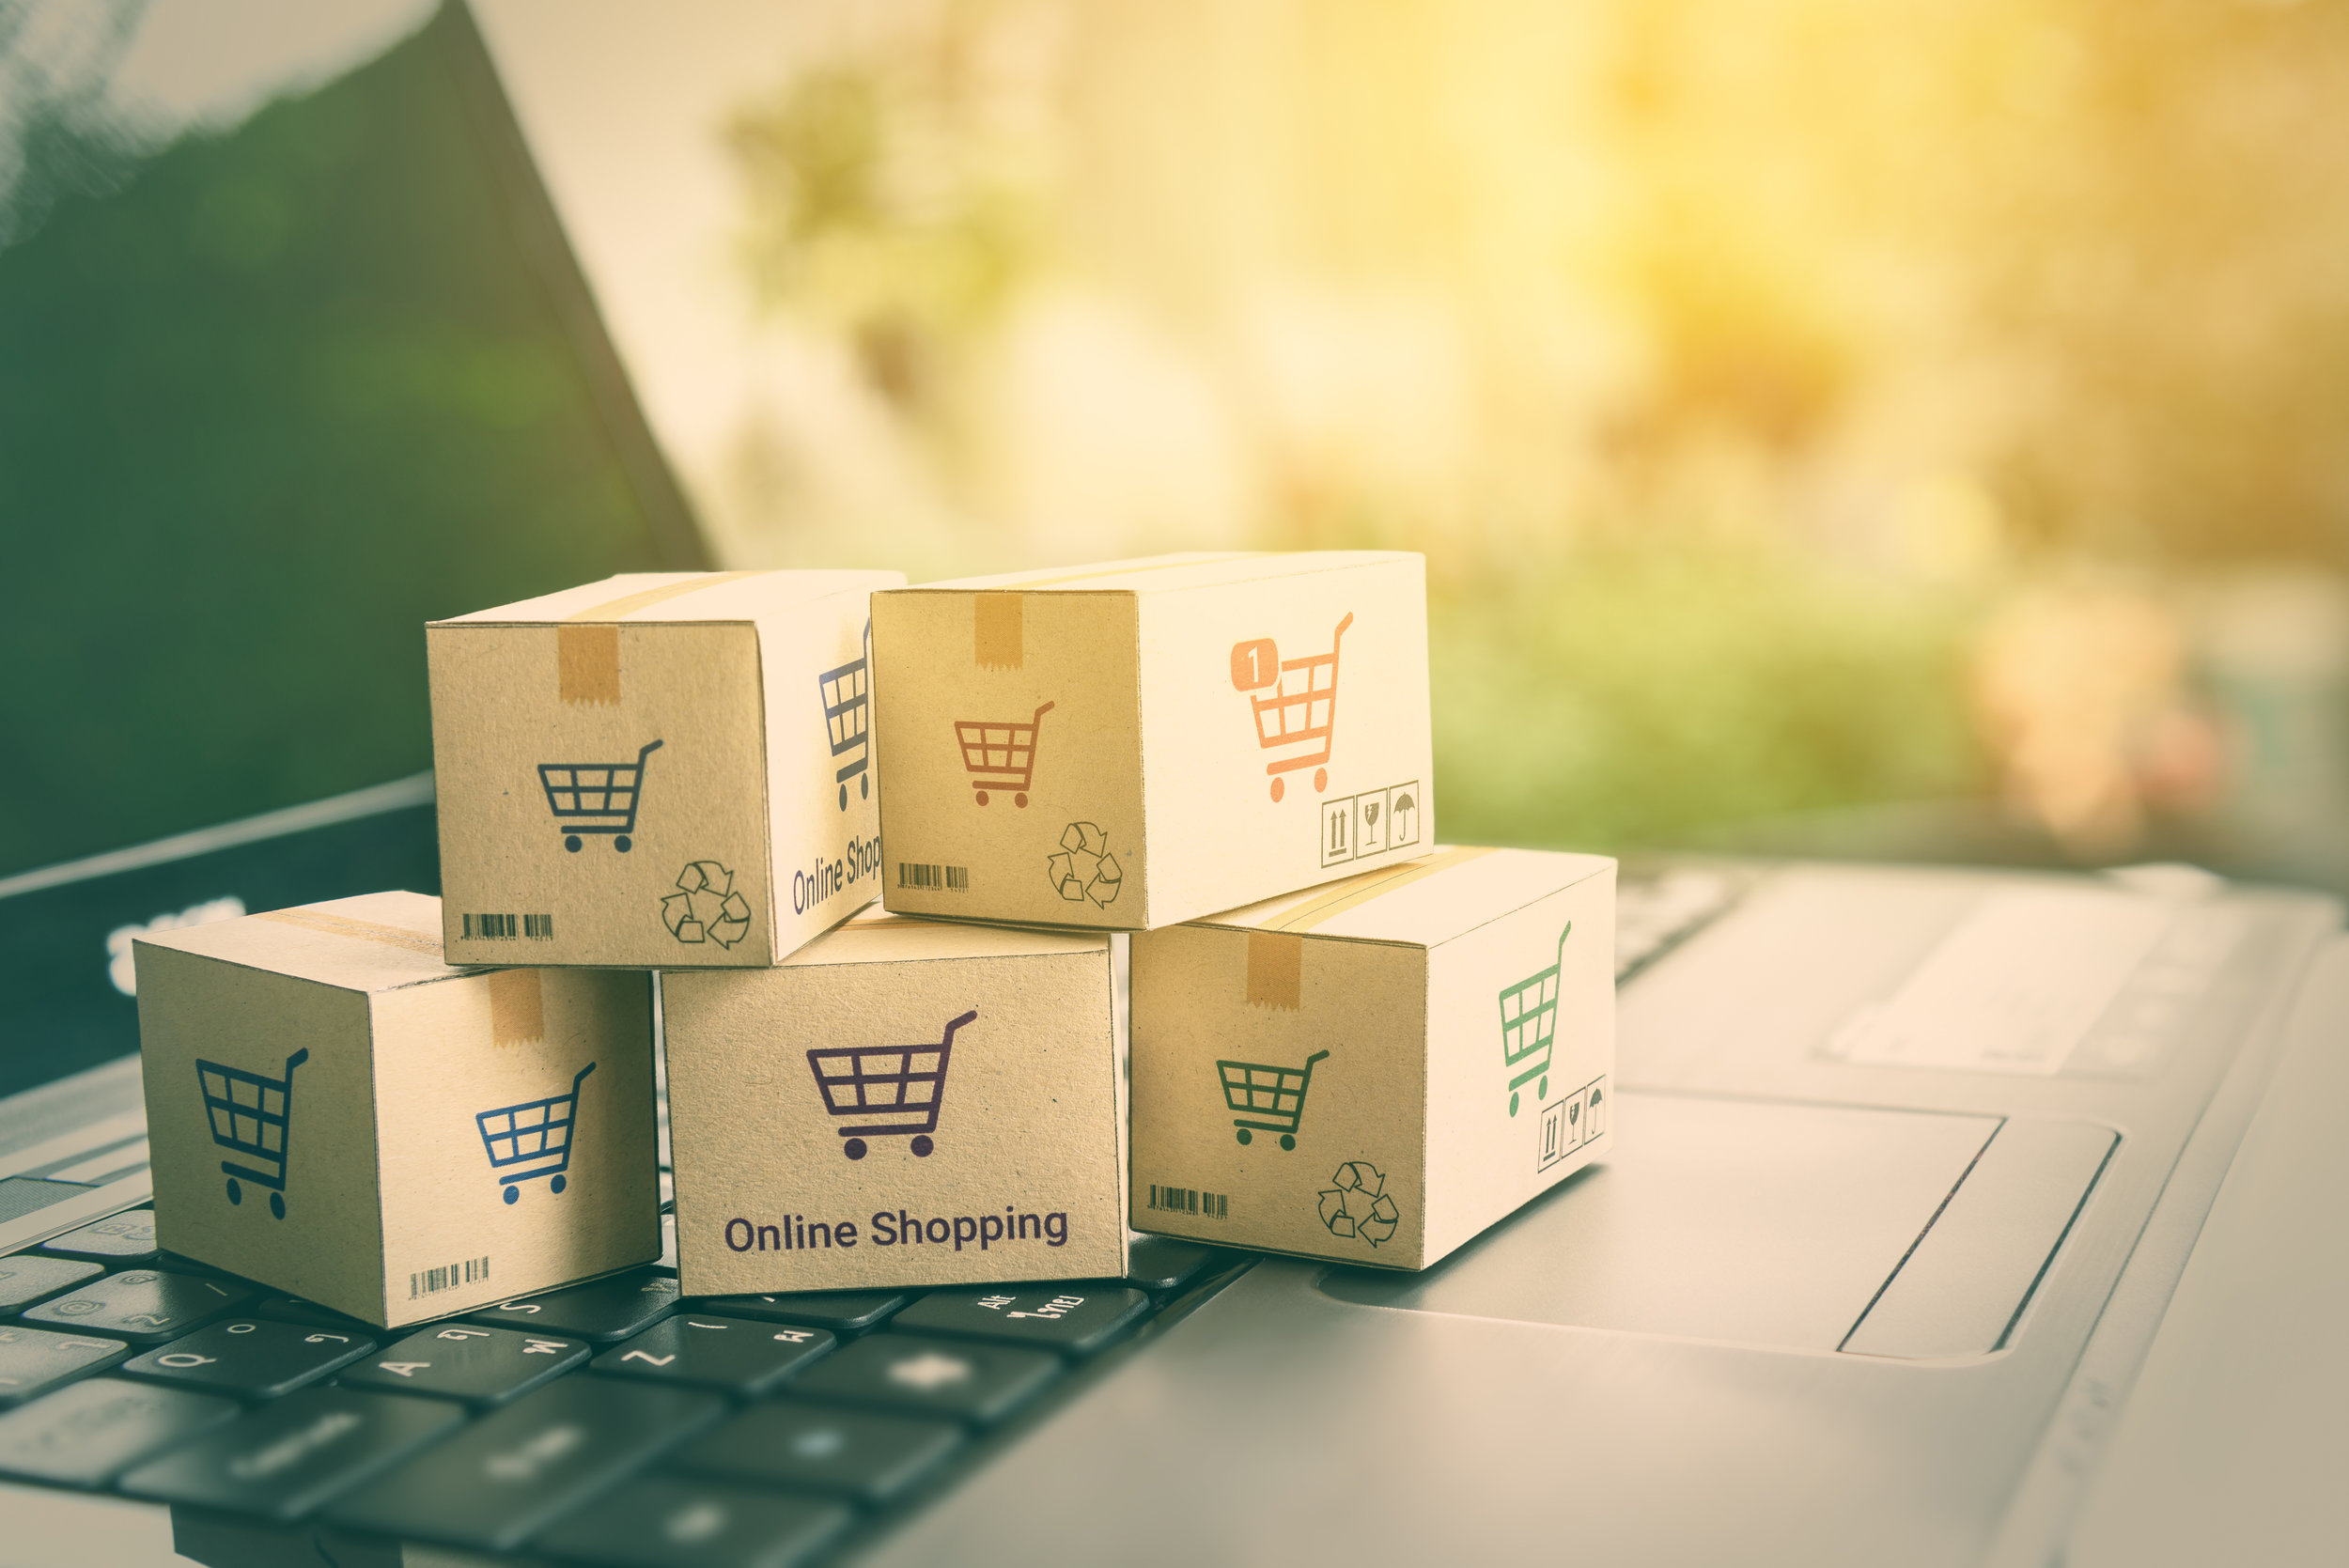 e-commerce supply chain management